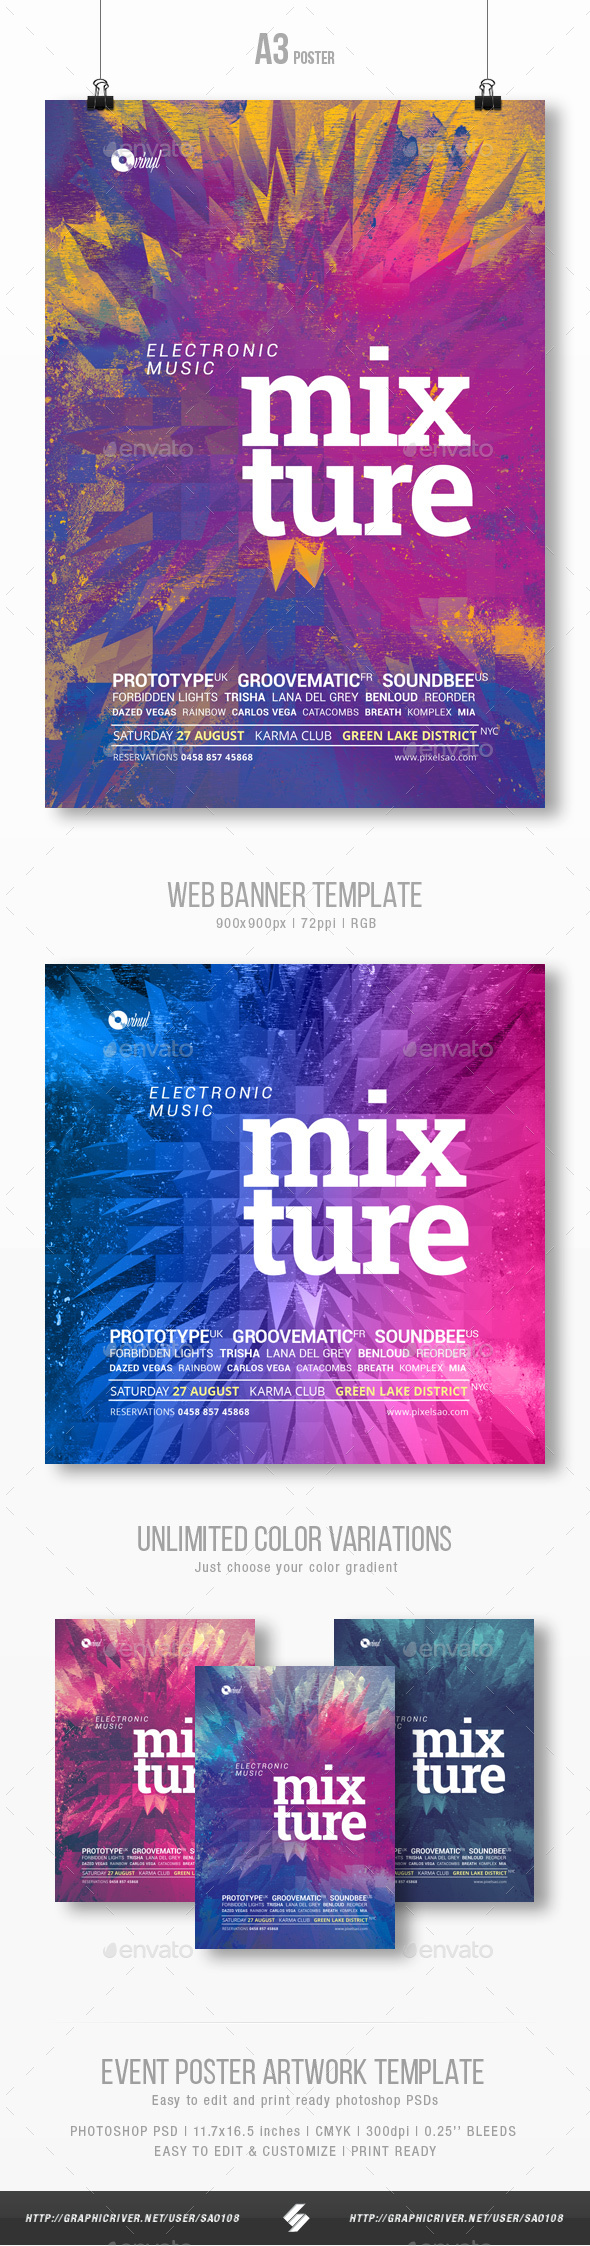 Mixture - Electronic Music Party Flyer / Poster Template A3 - Clubs & Parties Events